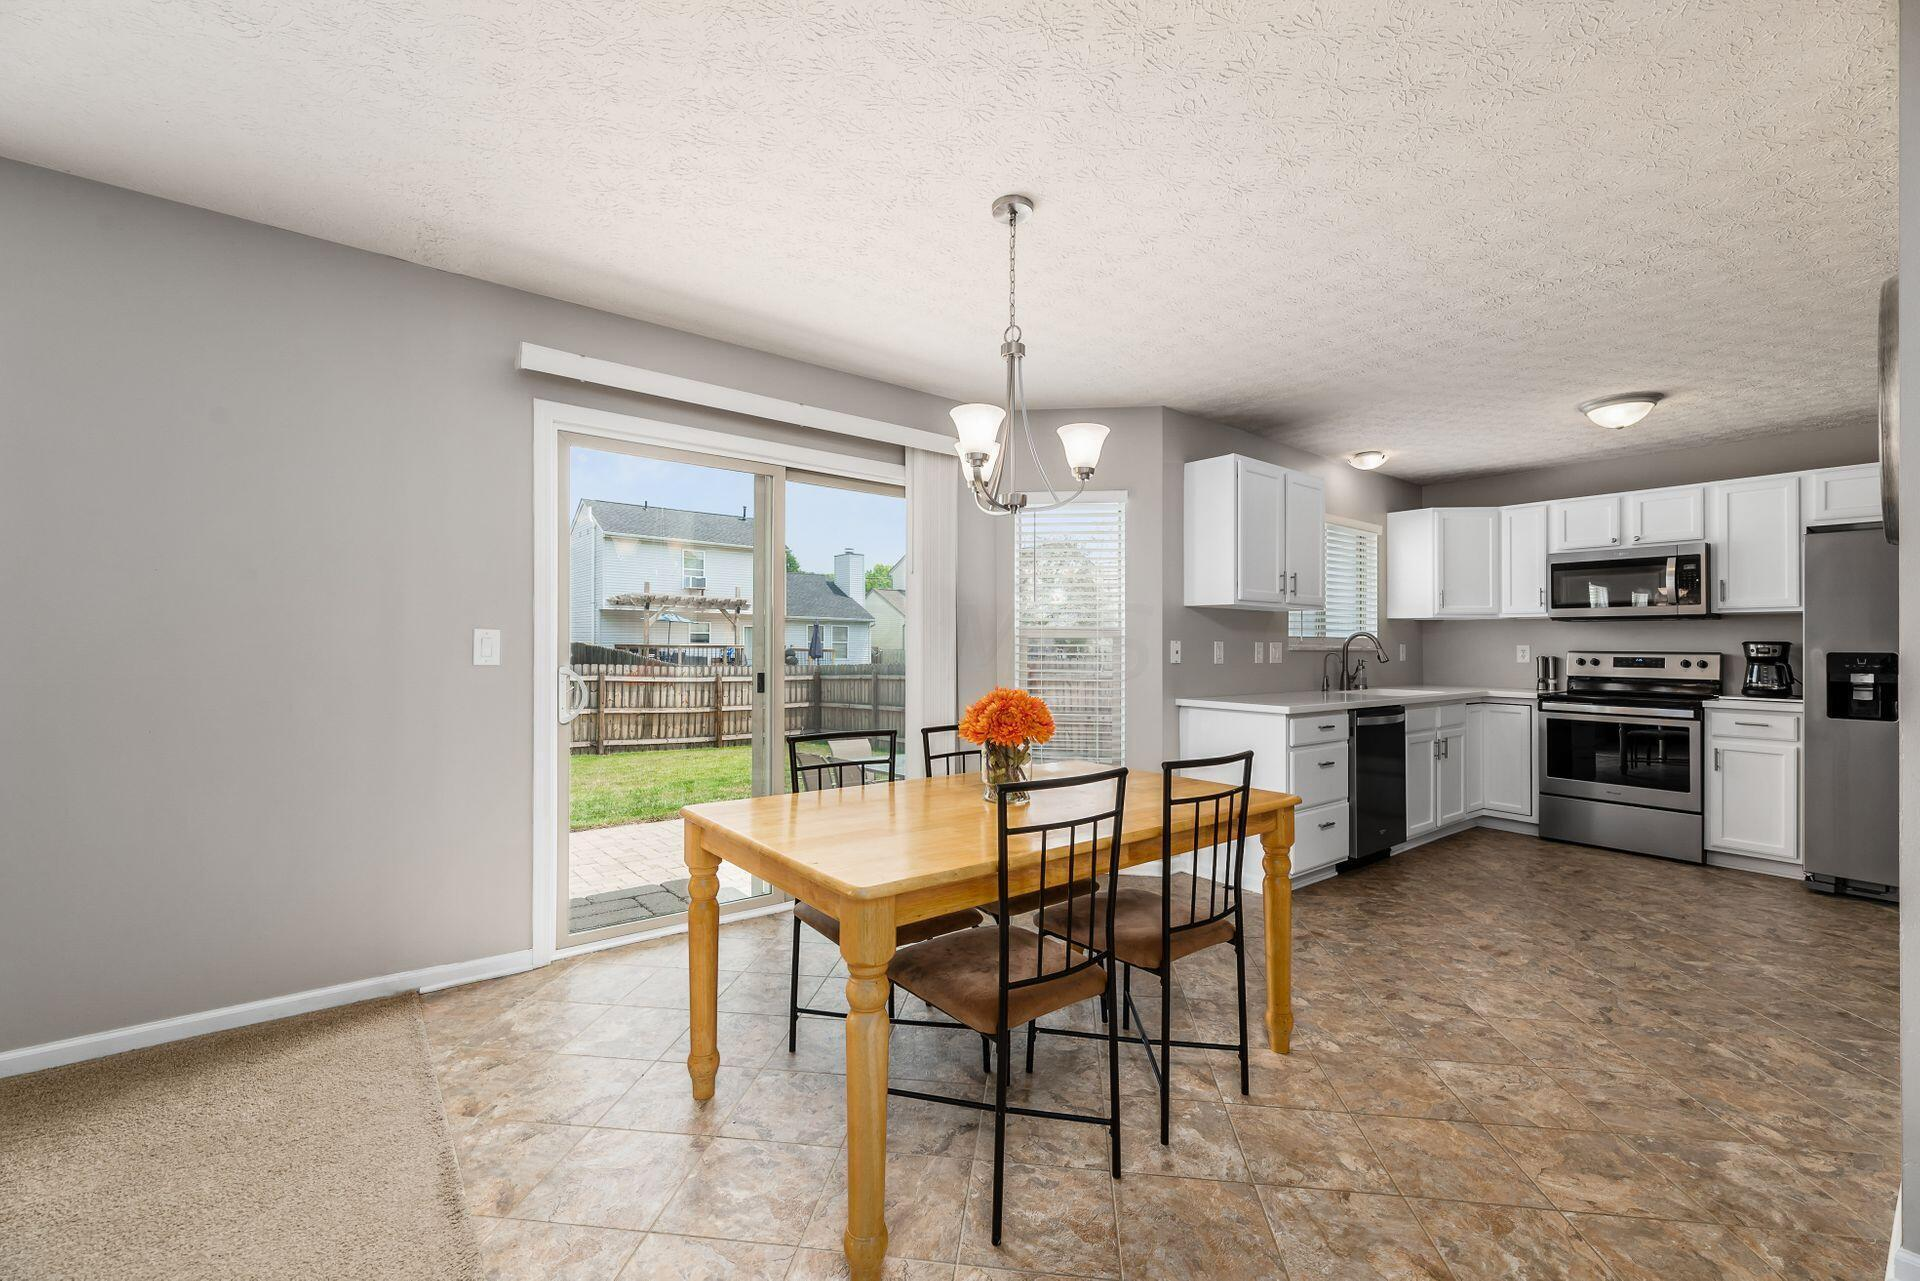 Eating Space and kitchen